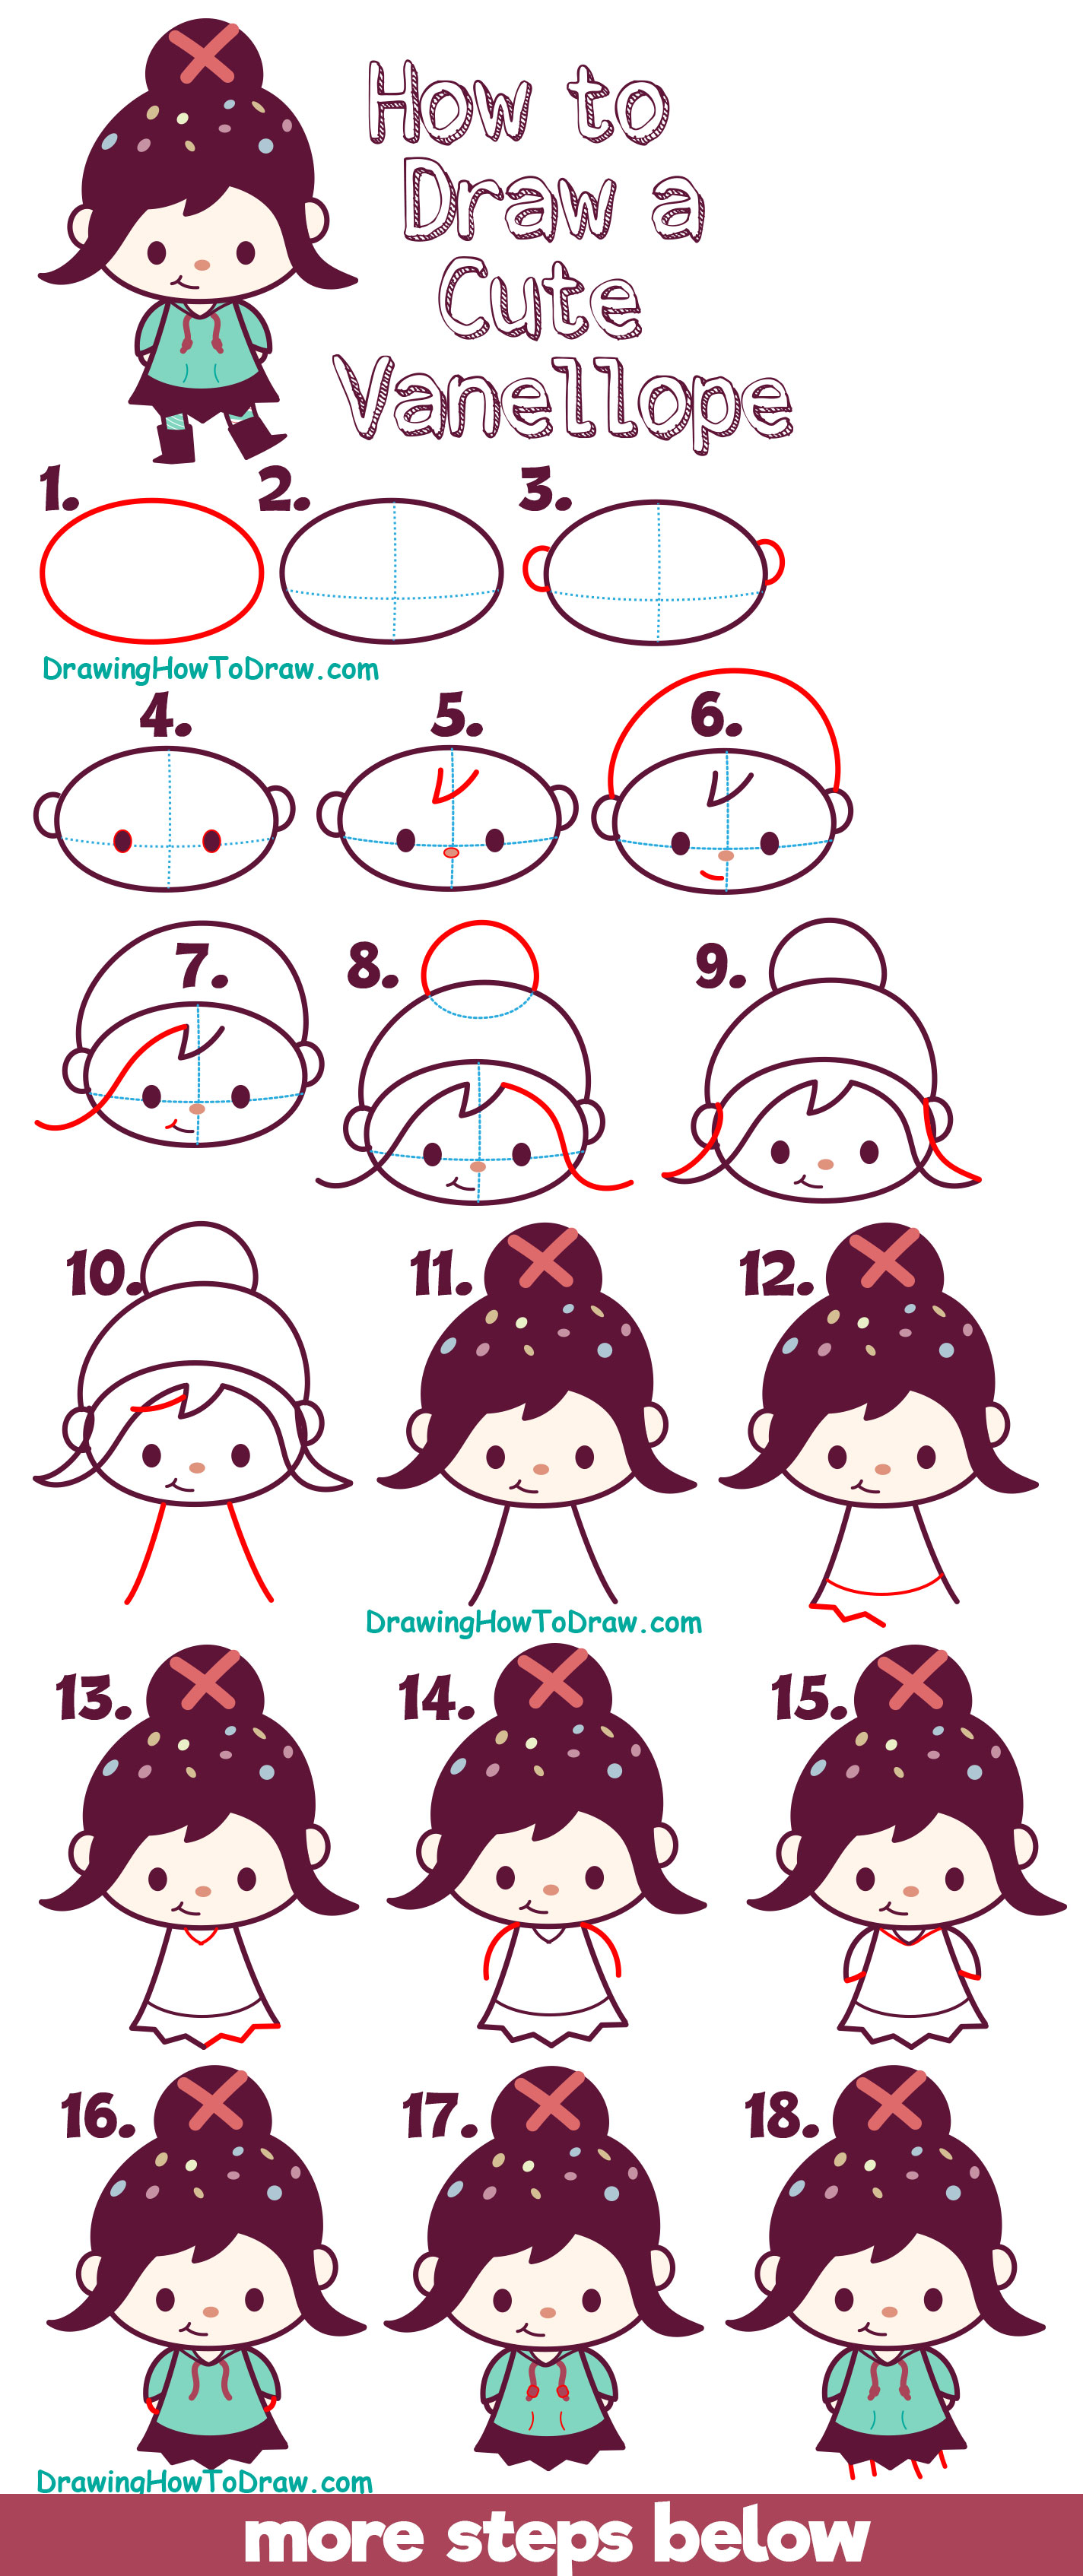 Learn How to Draw Cute Kawaii Chibi Vanellope (Glitch) from Wreck It Ralph 2 - Easy for Kids